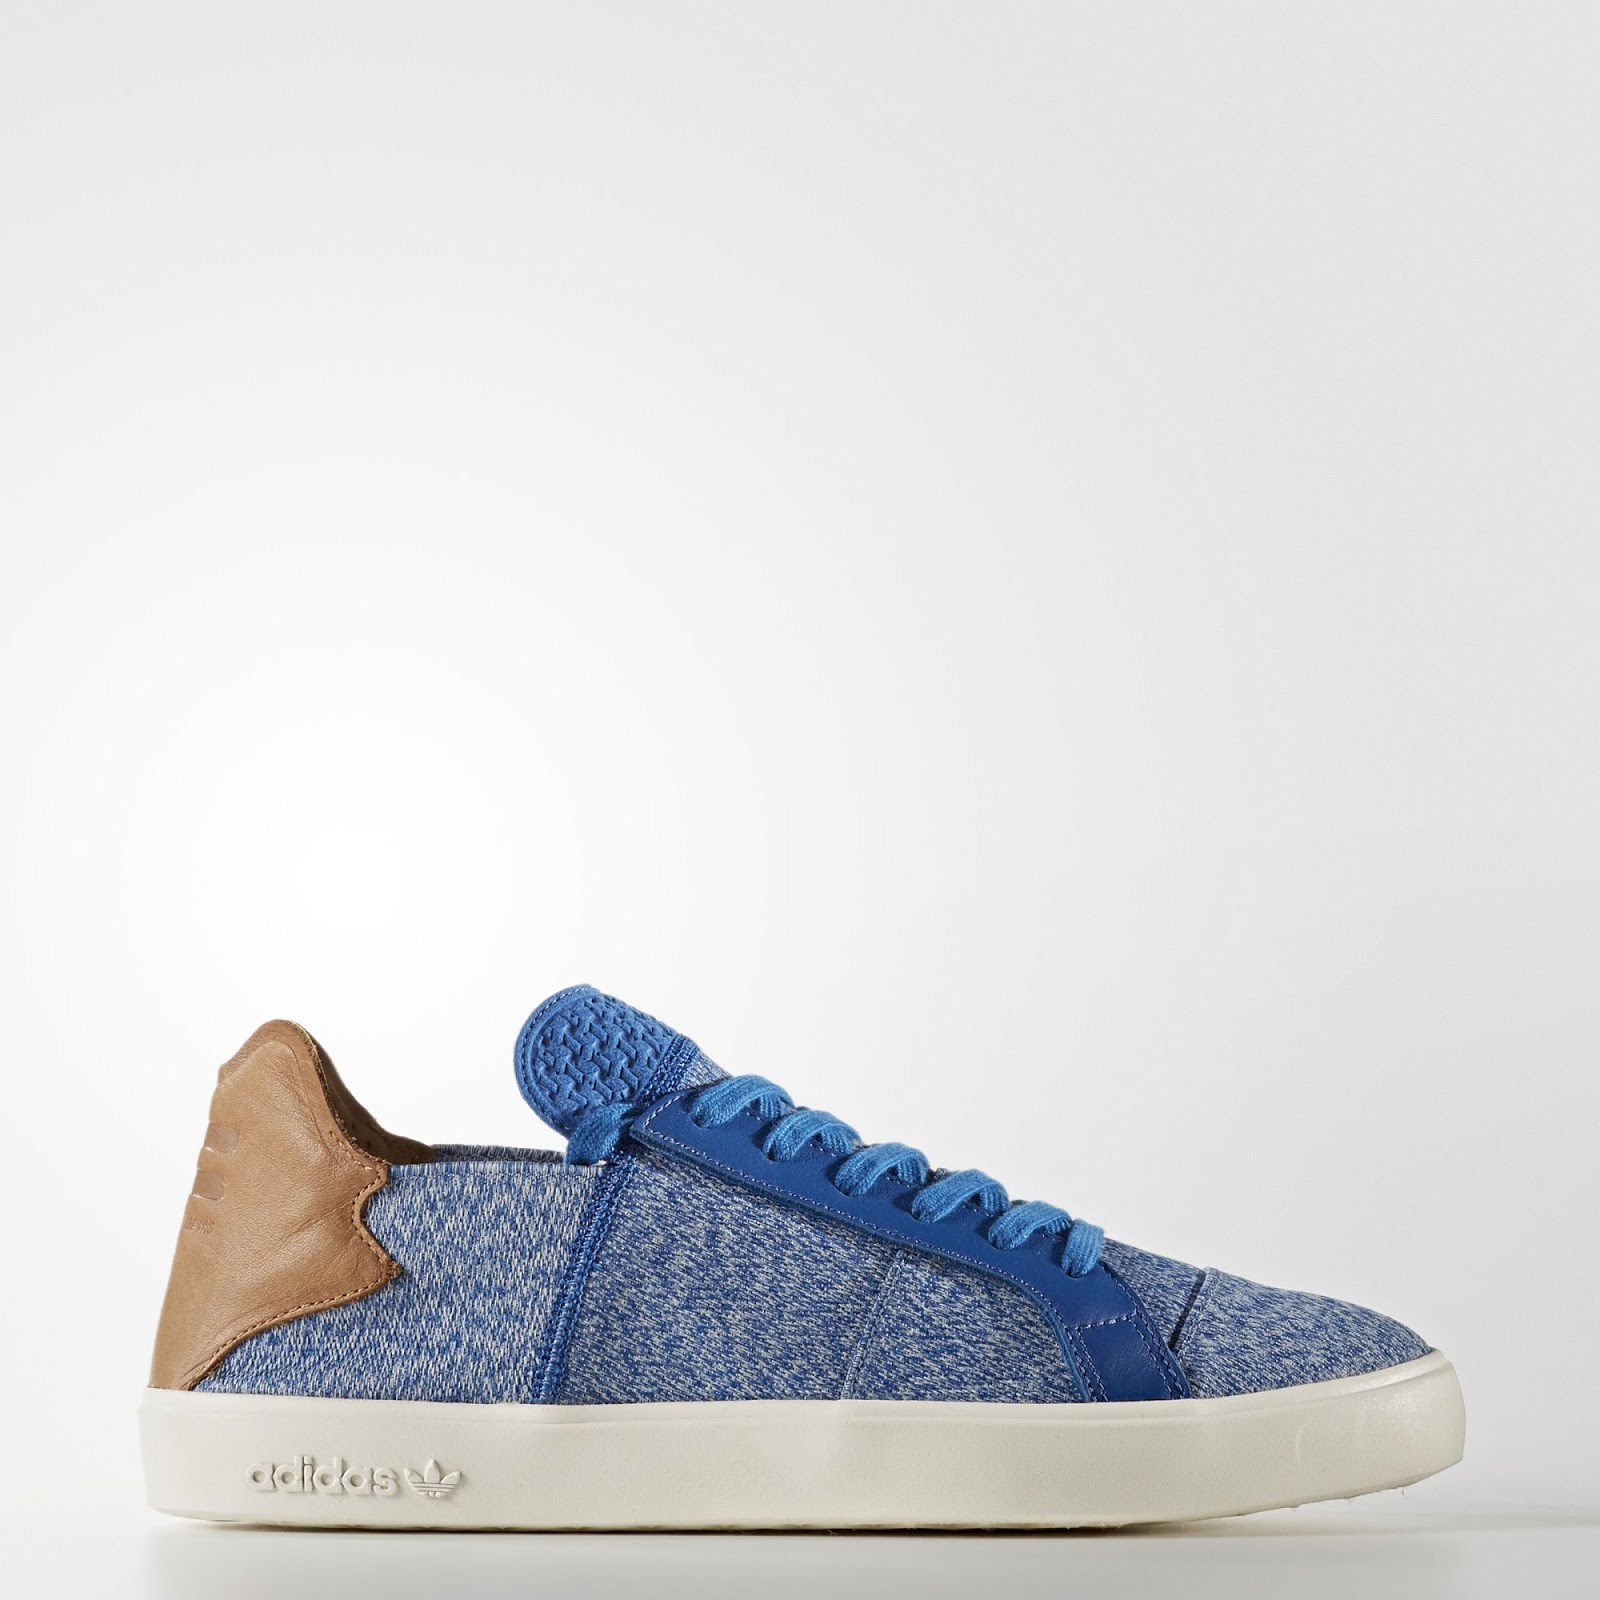 3d2a83fd7b886 Object of Desire  Pharrell Williams x Adidas Originals Pink Beach Elastic  Lace Up Sneakers